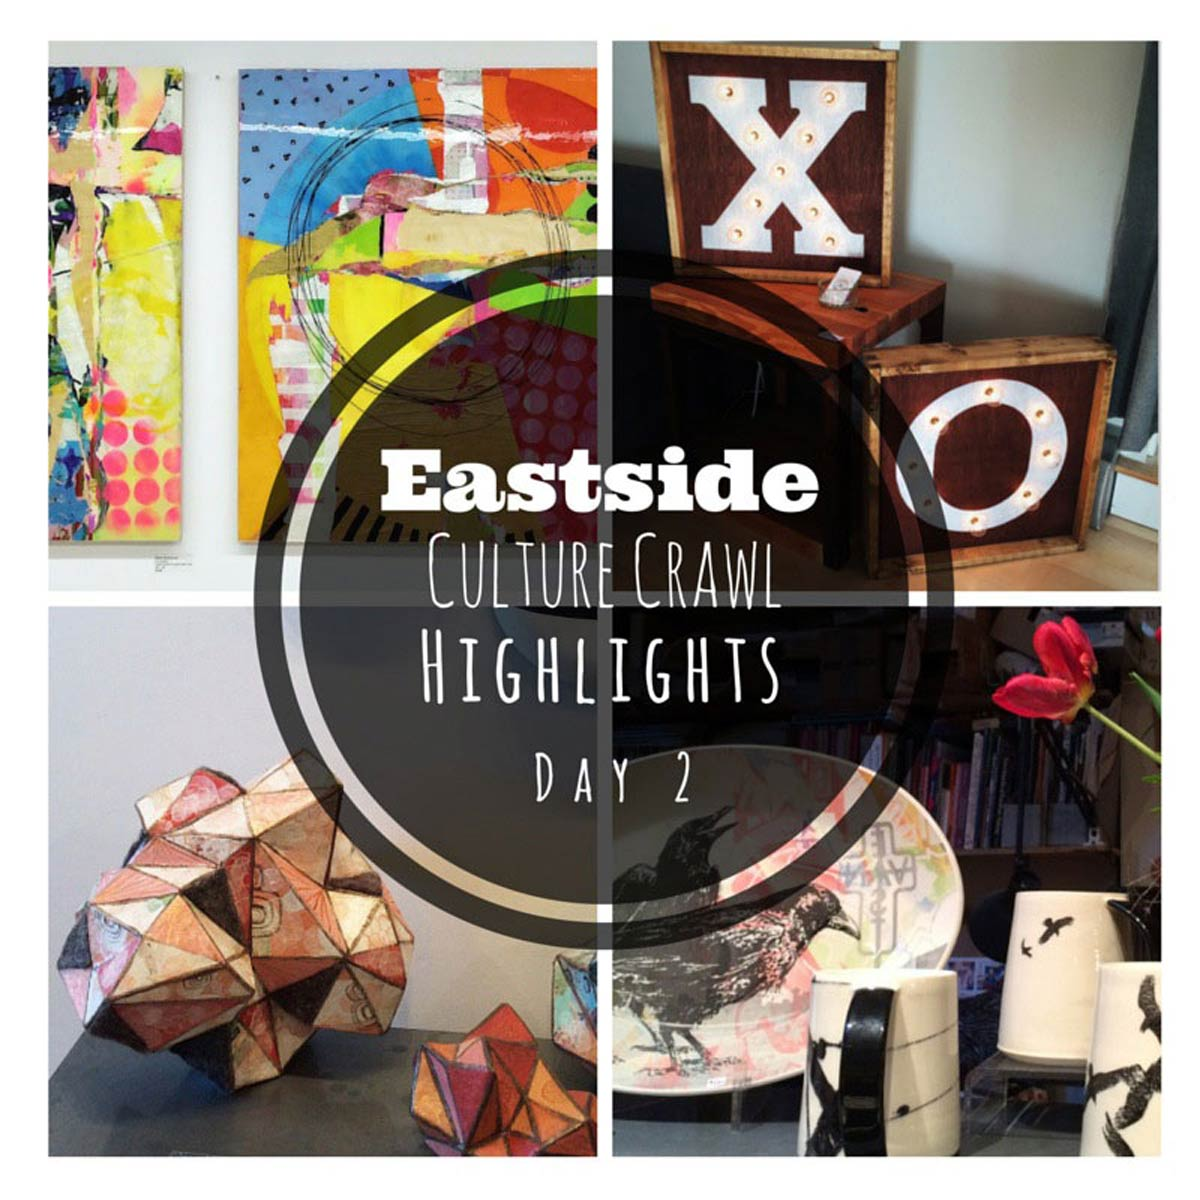 Eastside Culture Crawl Highlights Day 2